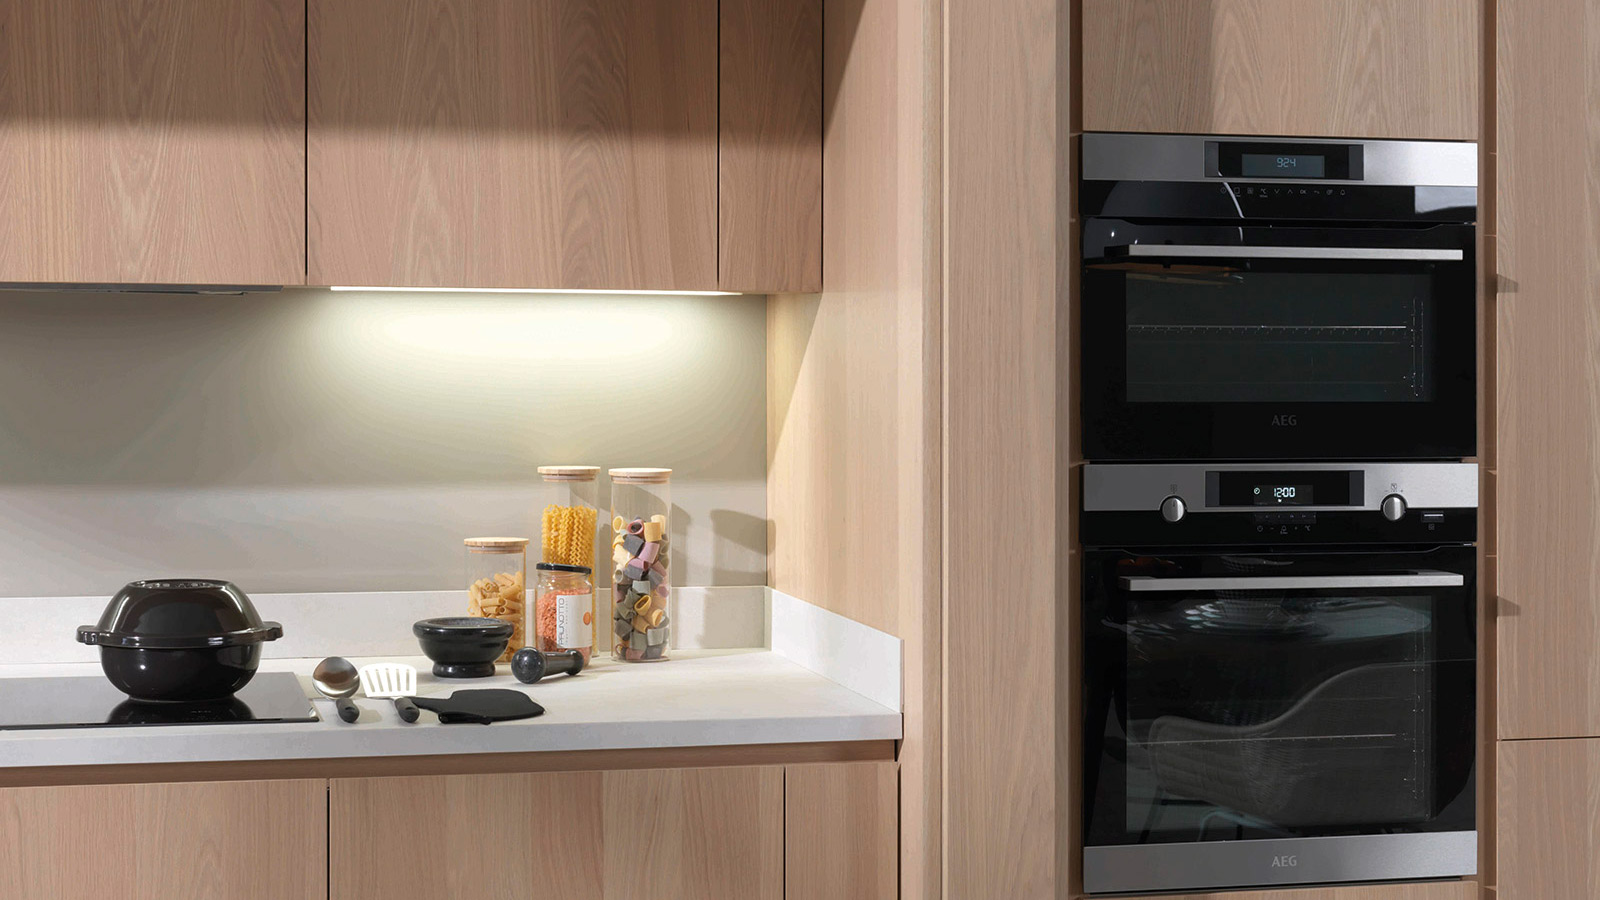 Kitchen Cabinets, much more than simply storage